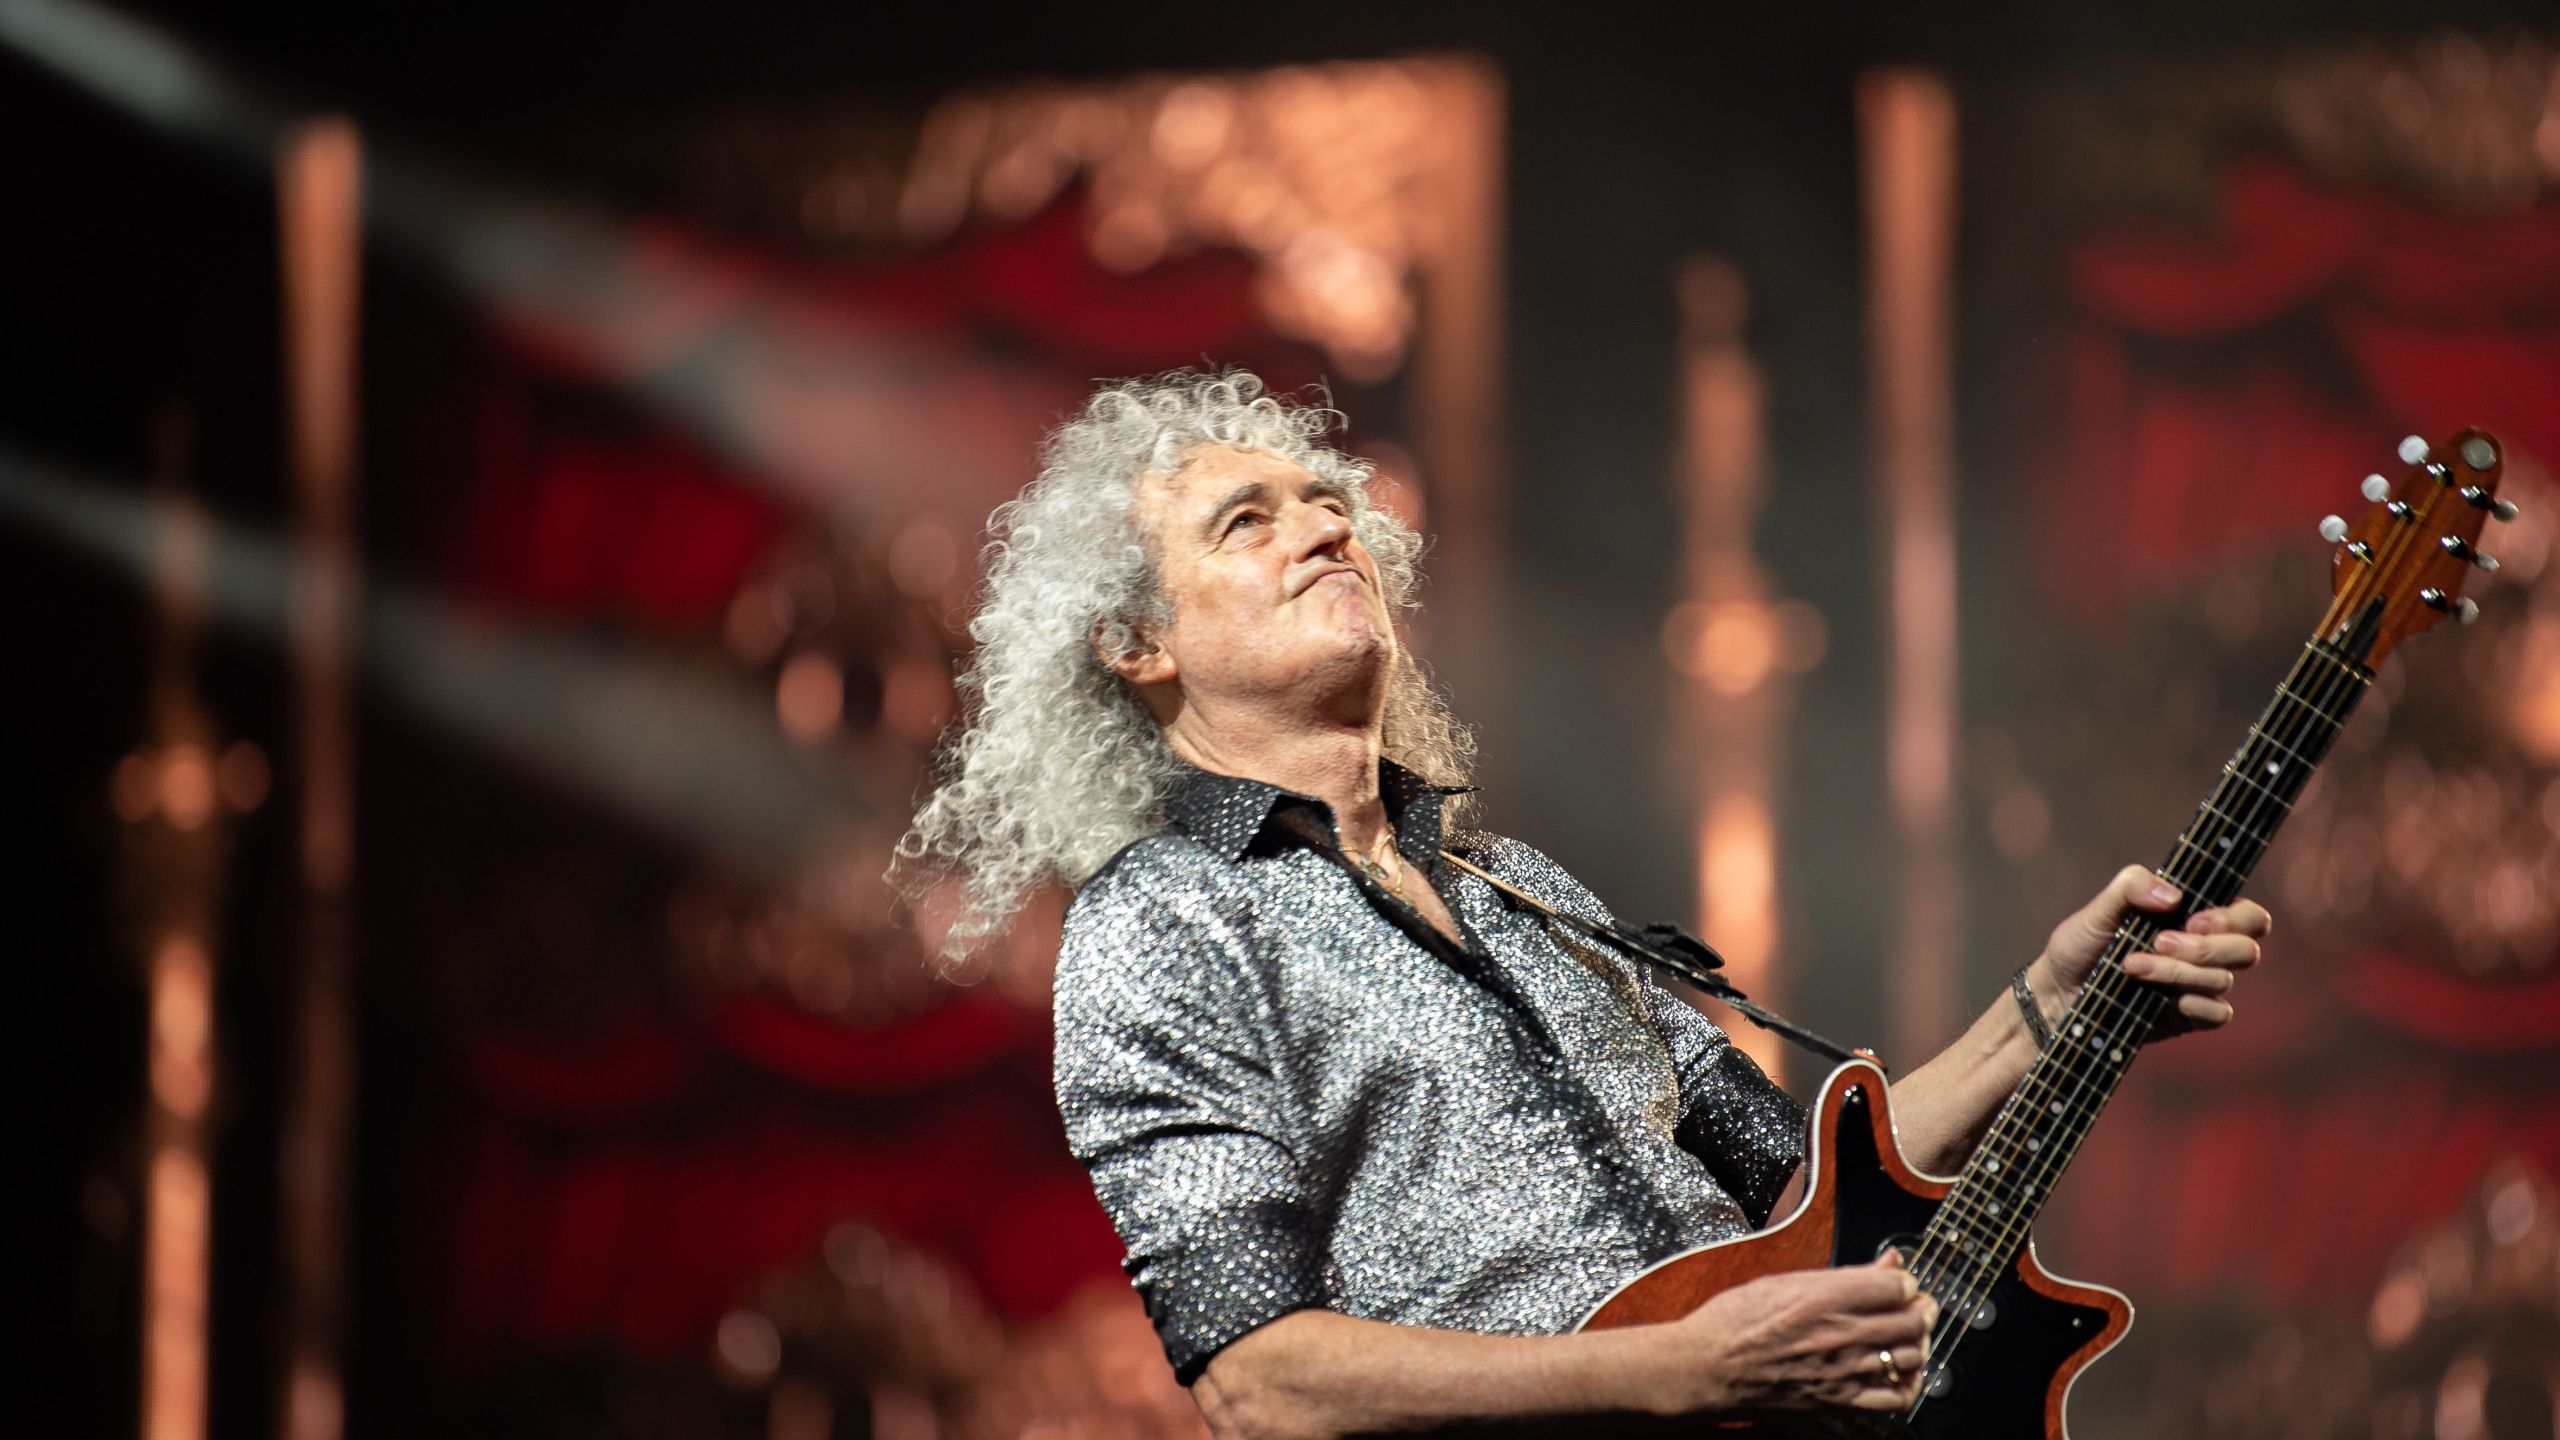 In this photo taken on January 18, 2020, Queen guitarist Brian May performs during the Queen + Adam Lambert concert in Seoul. (YELIM LEE/AFP via Getty Images)